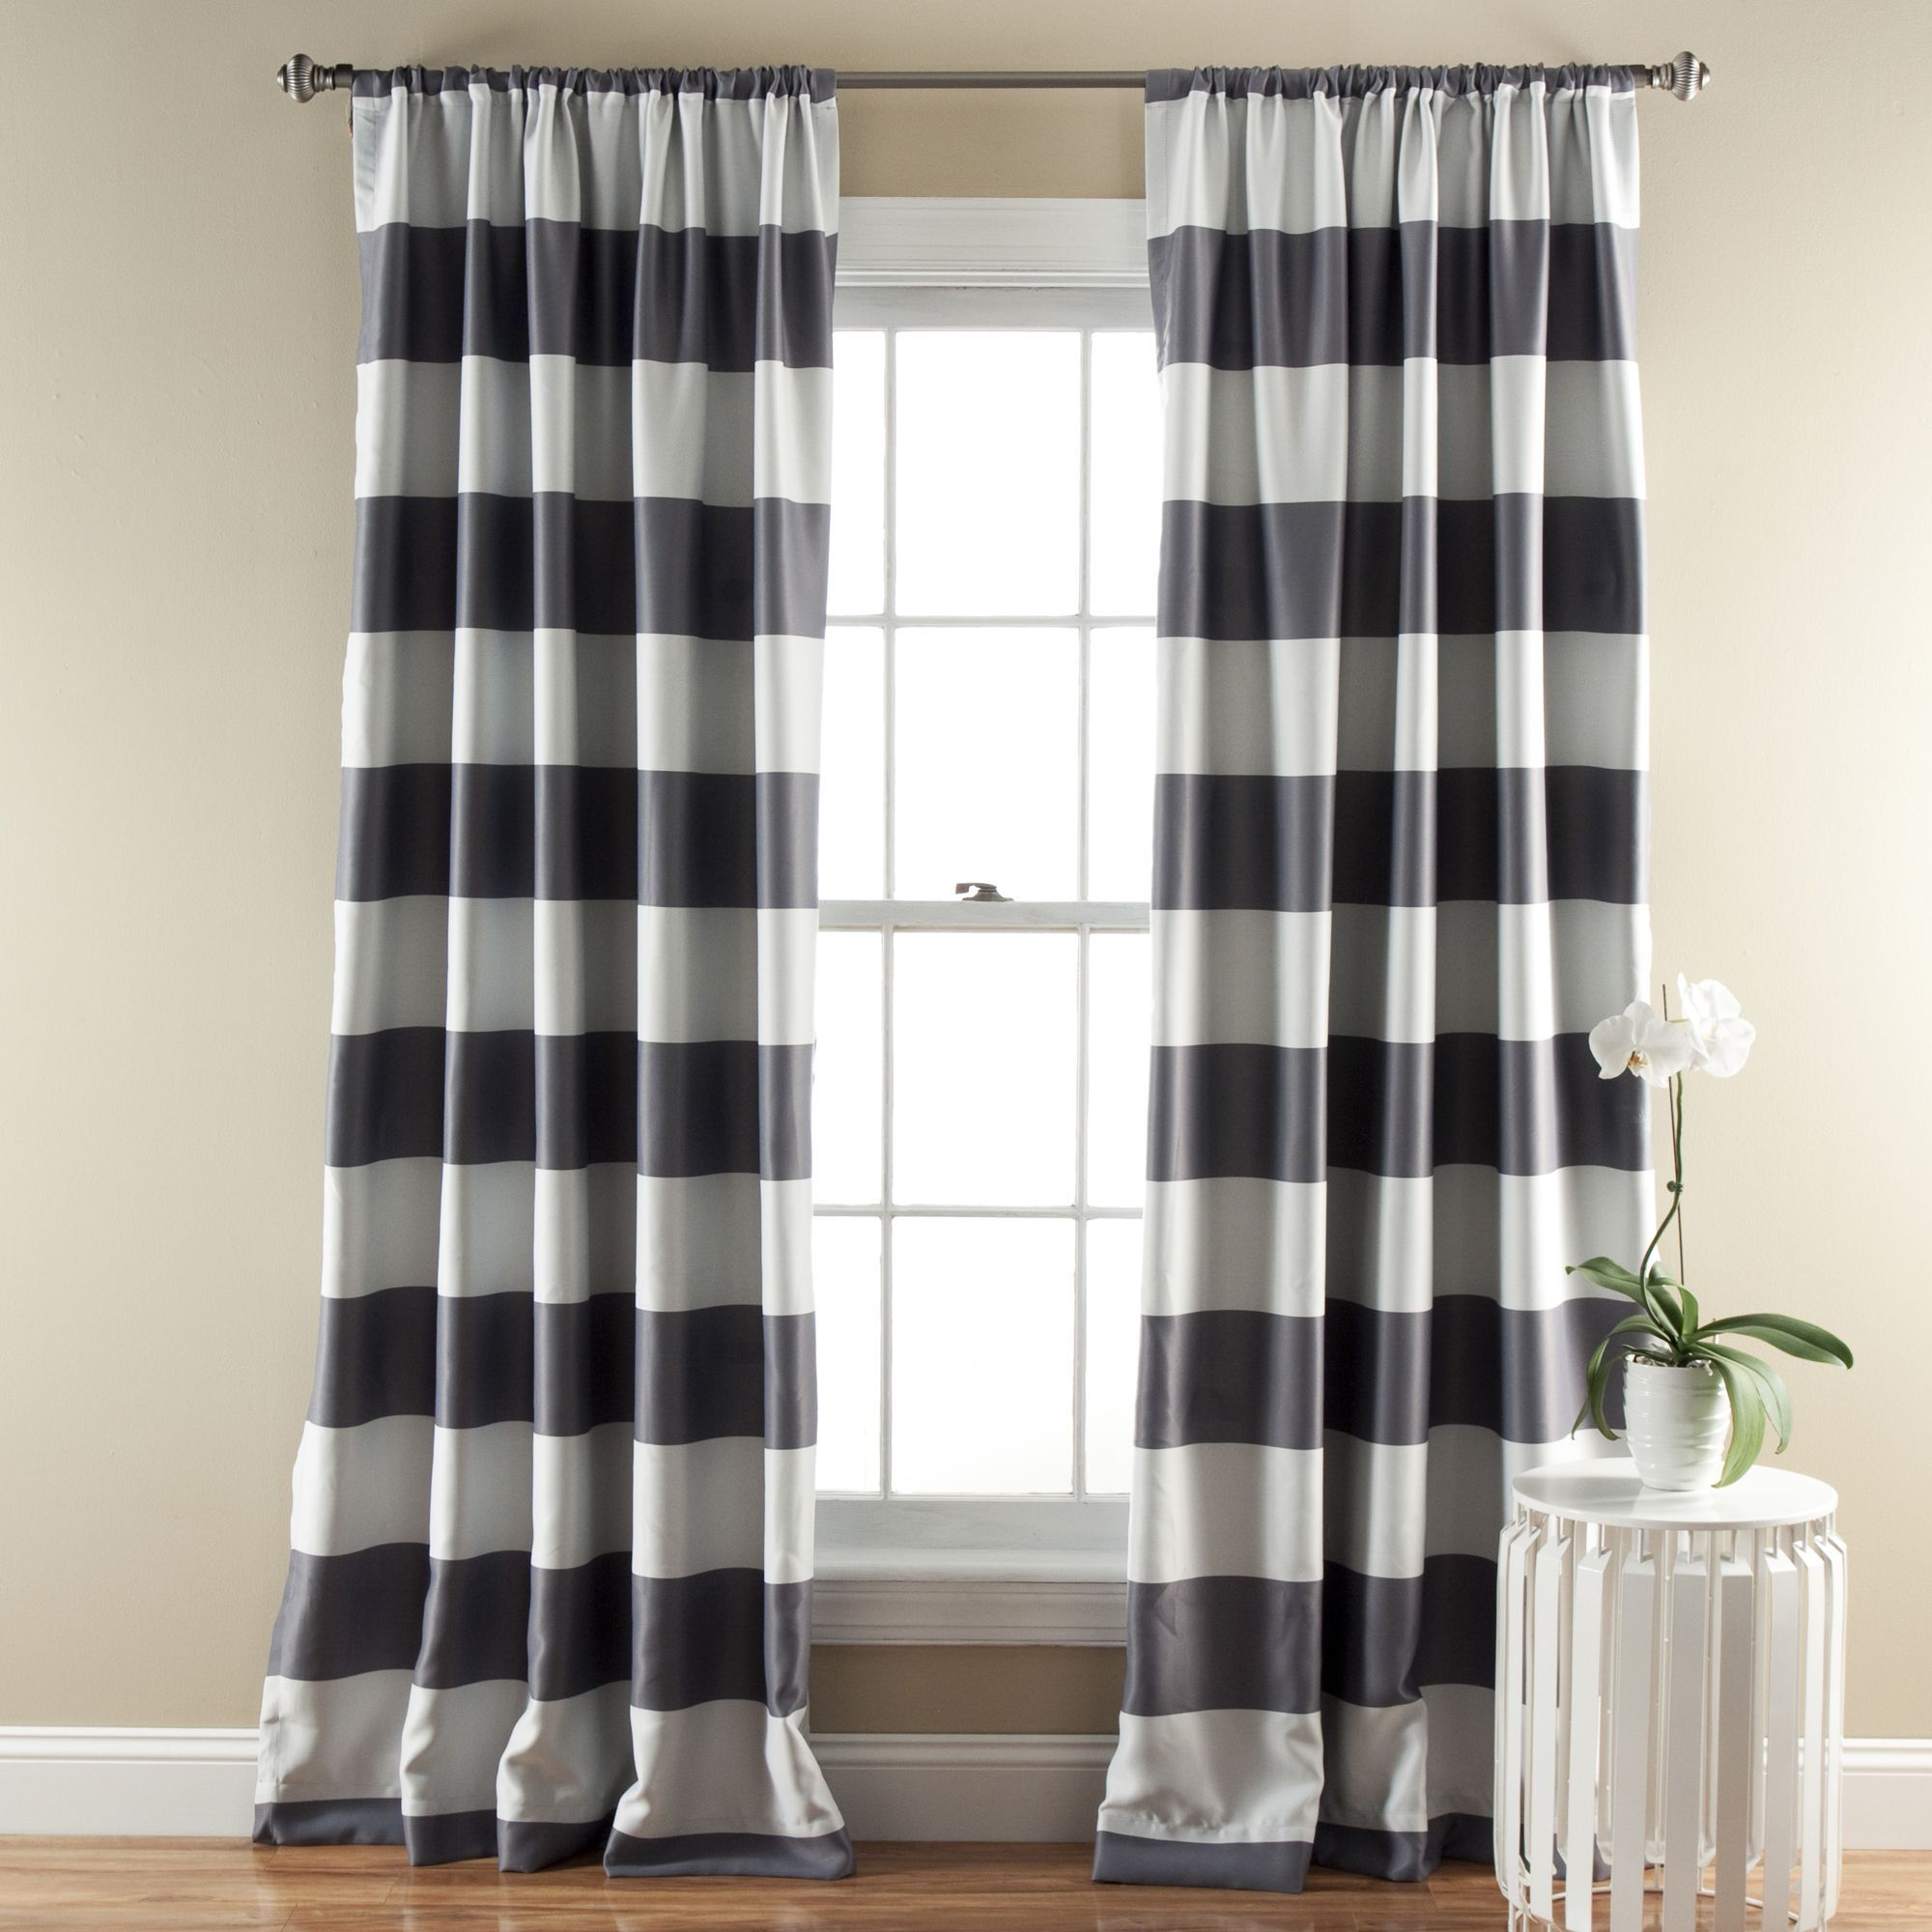 These Unique And Stylish Blackout Window Panels Keeps The Room Dark By Blocking Sunlight Because